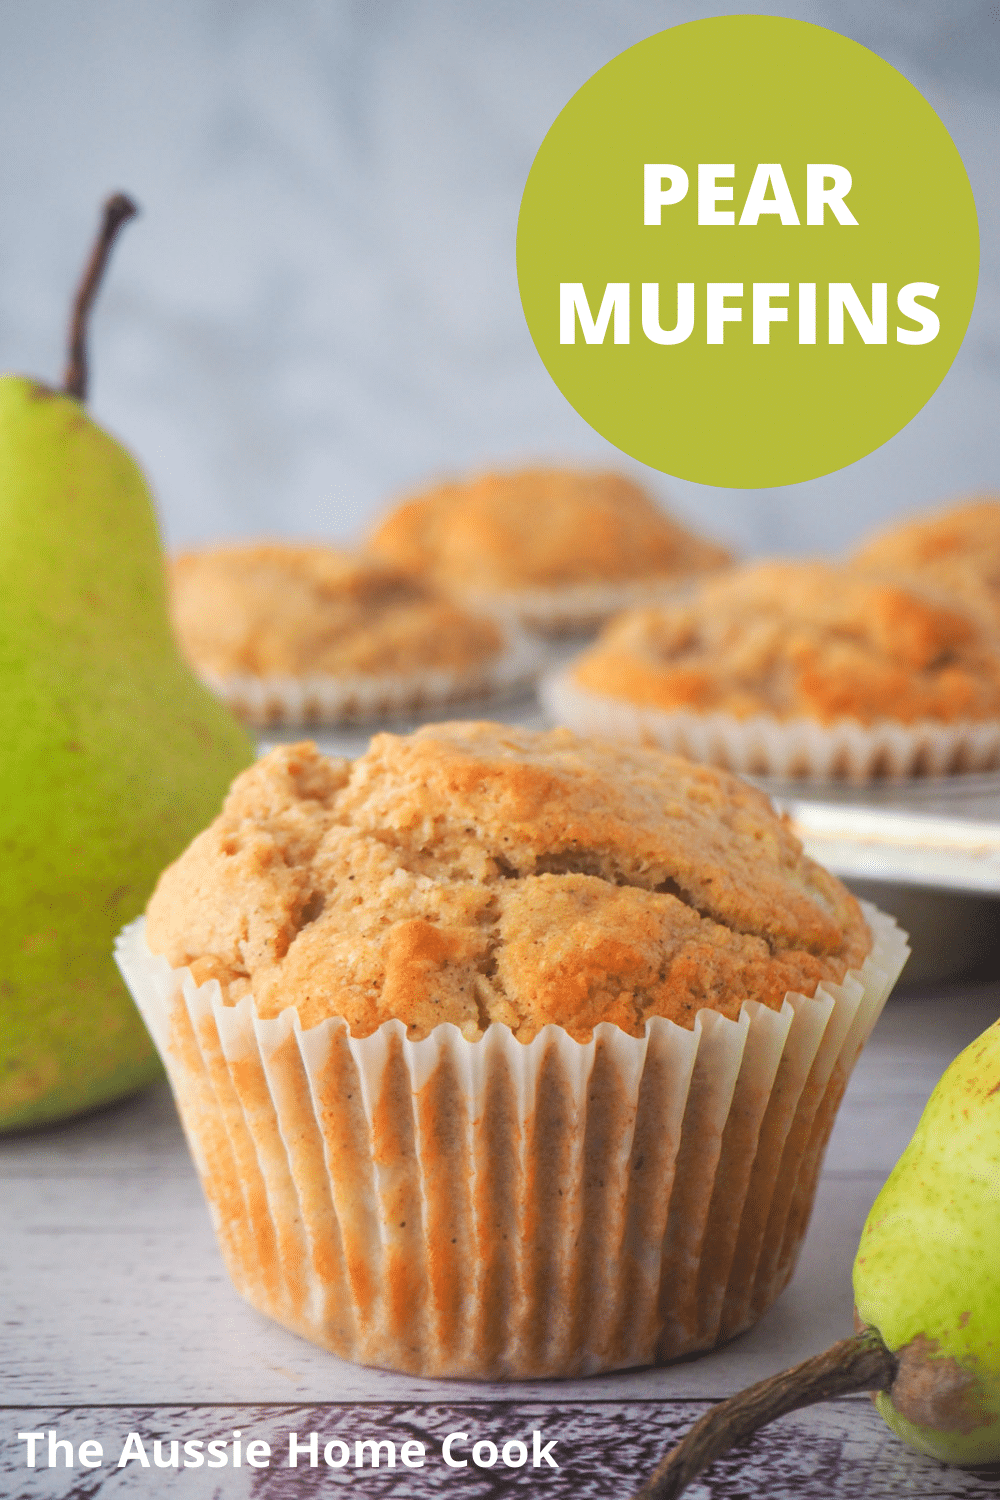 Pear muffin with fresh pears and tray of muffins in the background, and text overlay, pear muffins, the aussie home cook..